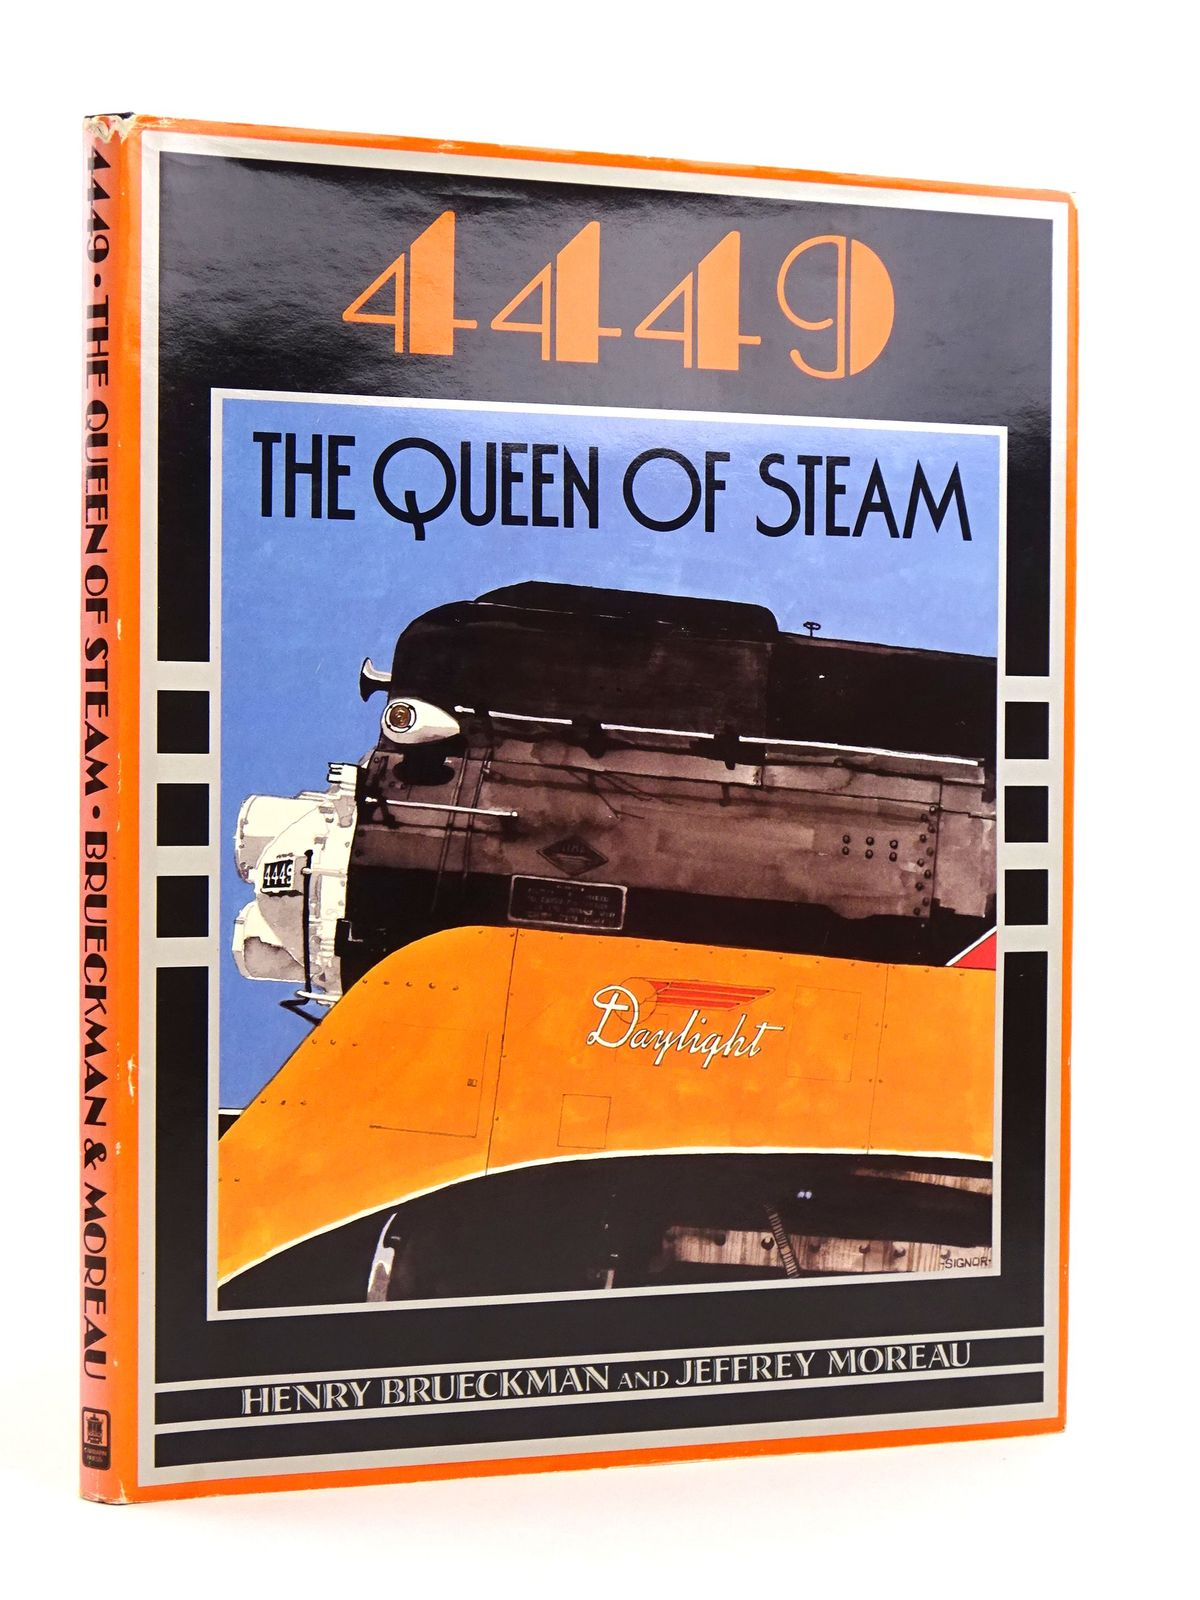 Photo of 4449 THE QUEEN OF STEAM written by Brueckman, Henry Moreau, Jeffrey published by Carbarn Press (STOCK CODE: 1818116)  for sale by Stella & Rose's Books